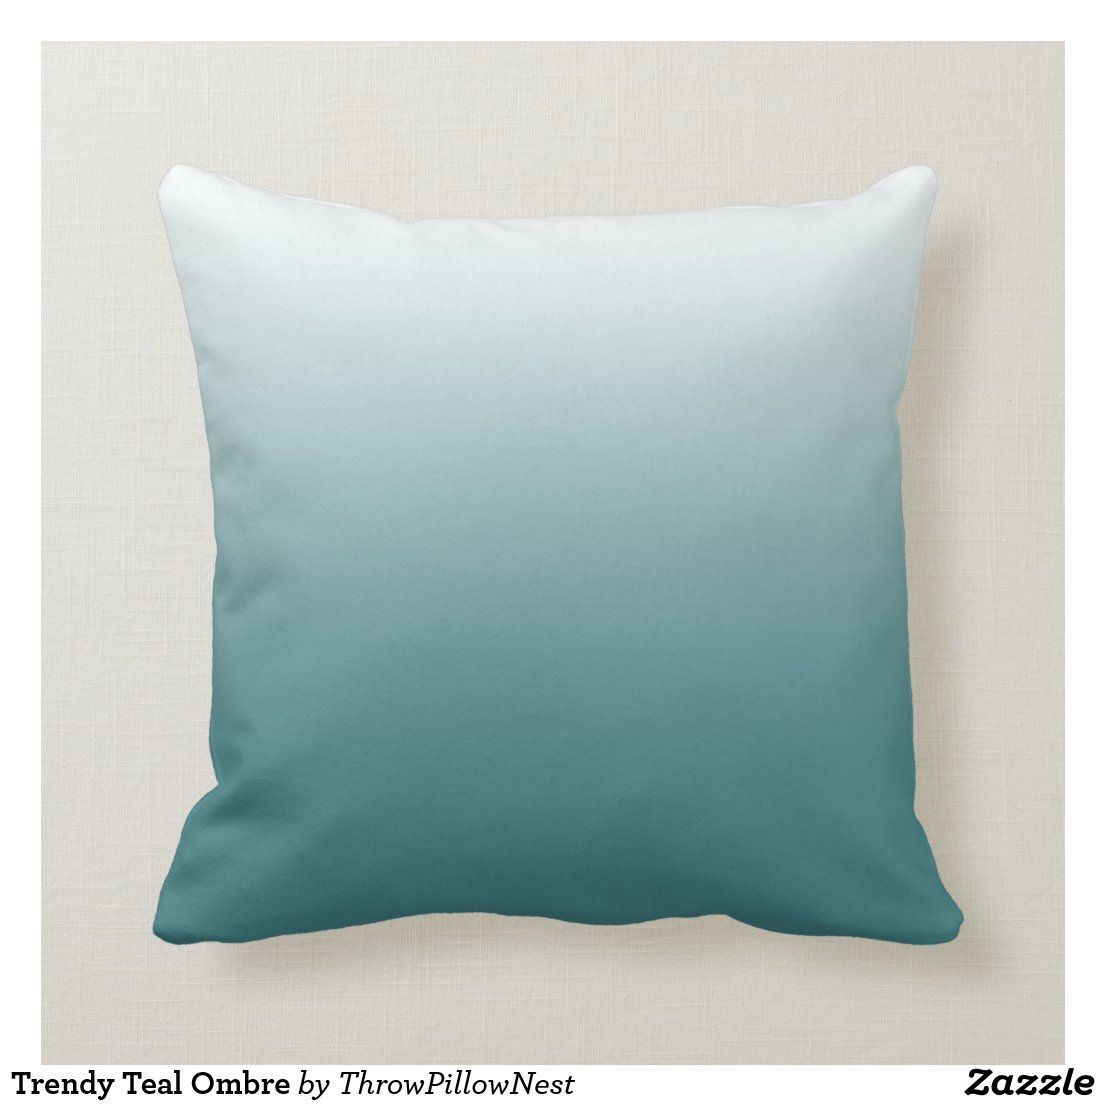 Trendy Teal Ombre Throw Pillow